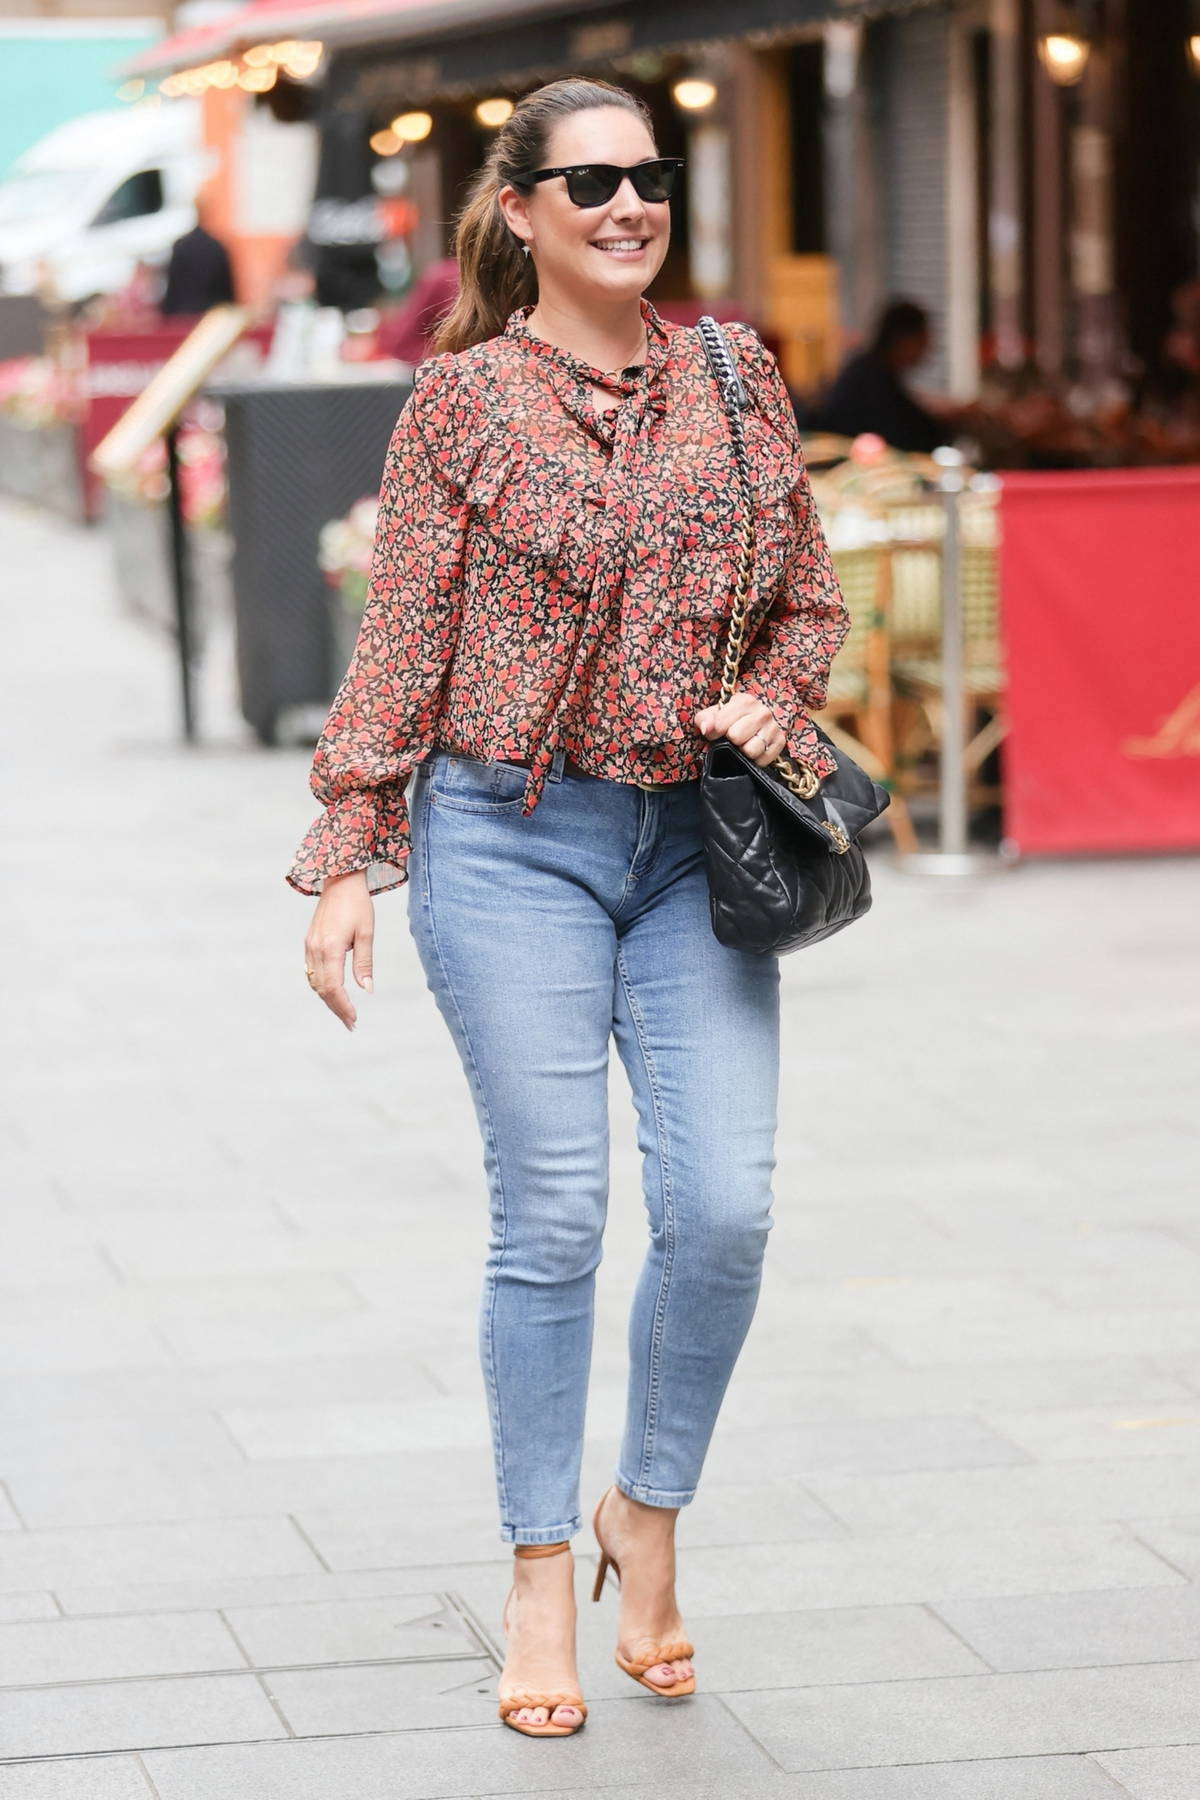 Kelly Brook rocks a pair of skin-tight jeans and floral blouse as she leaves Heart radio in London, UK